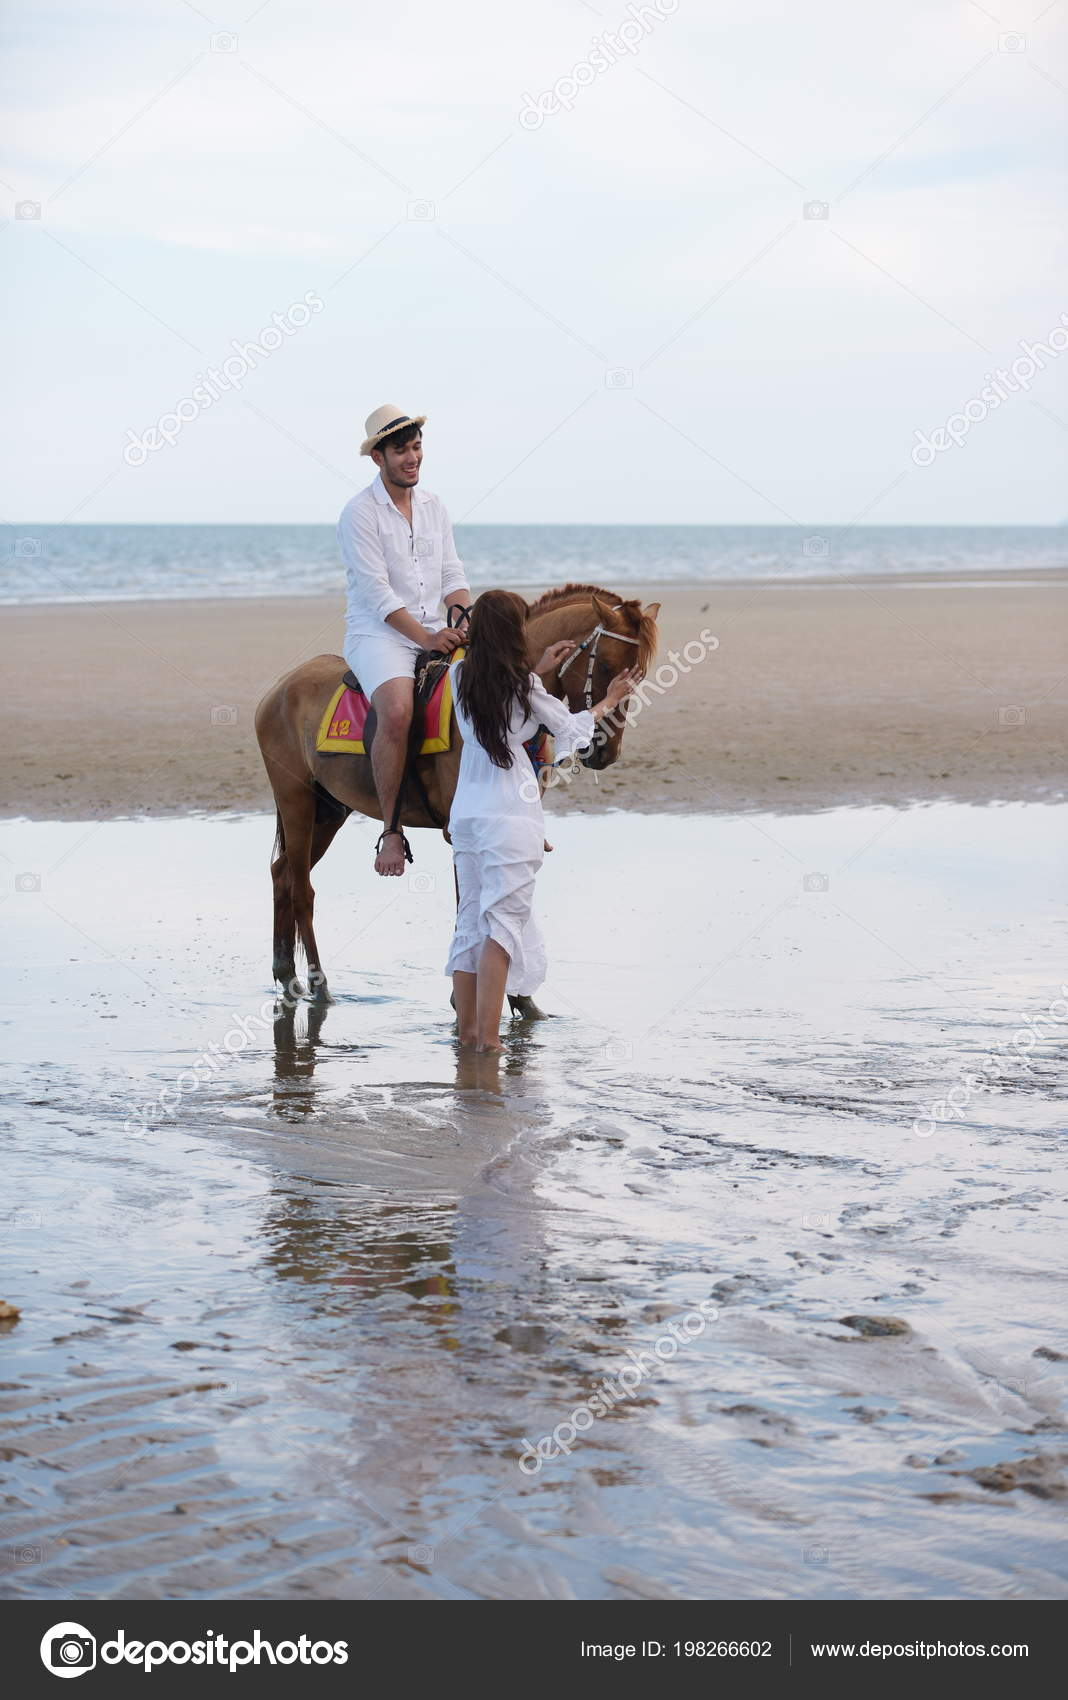 Romantic Couple Horse Riding Beach Afternoon Sweet Holiday Stock Photo C Tharathiponsri Gmail Com 198266602